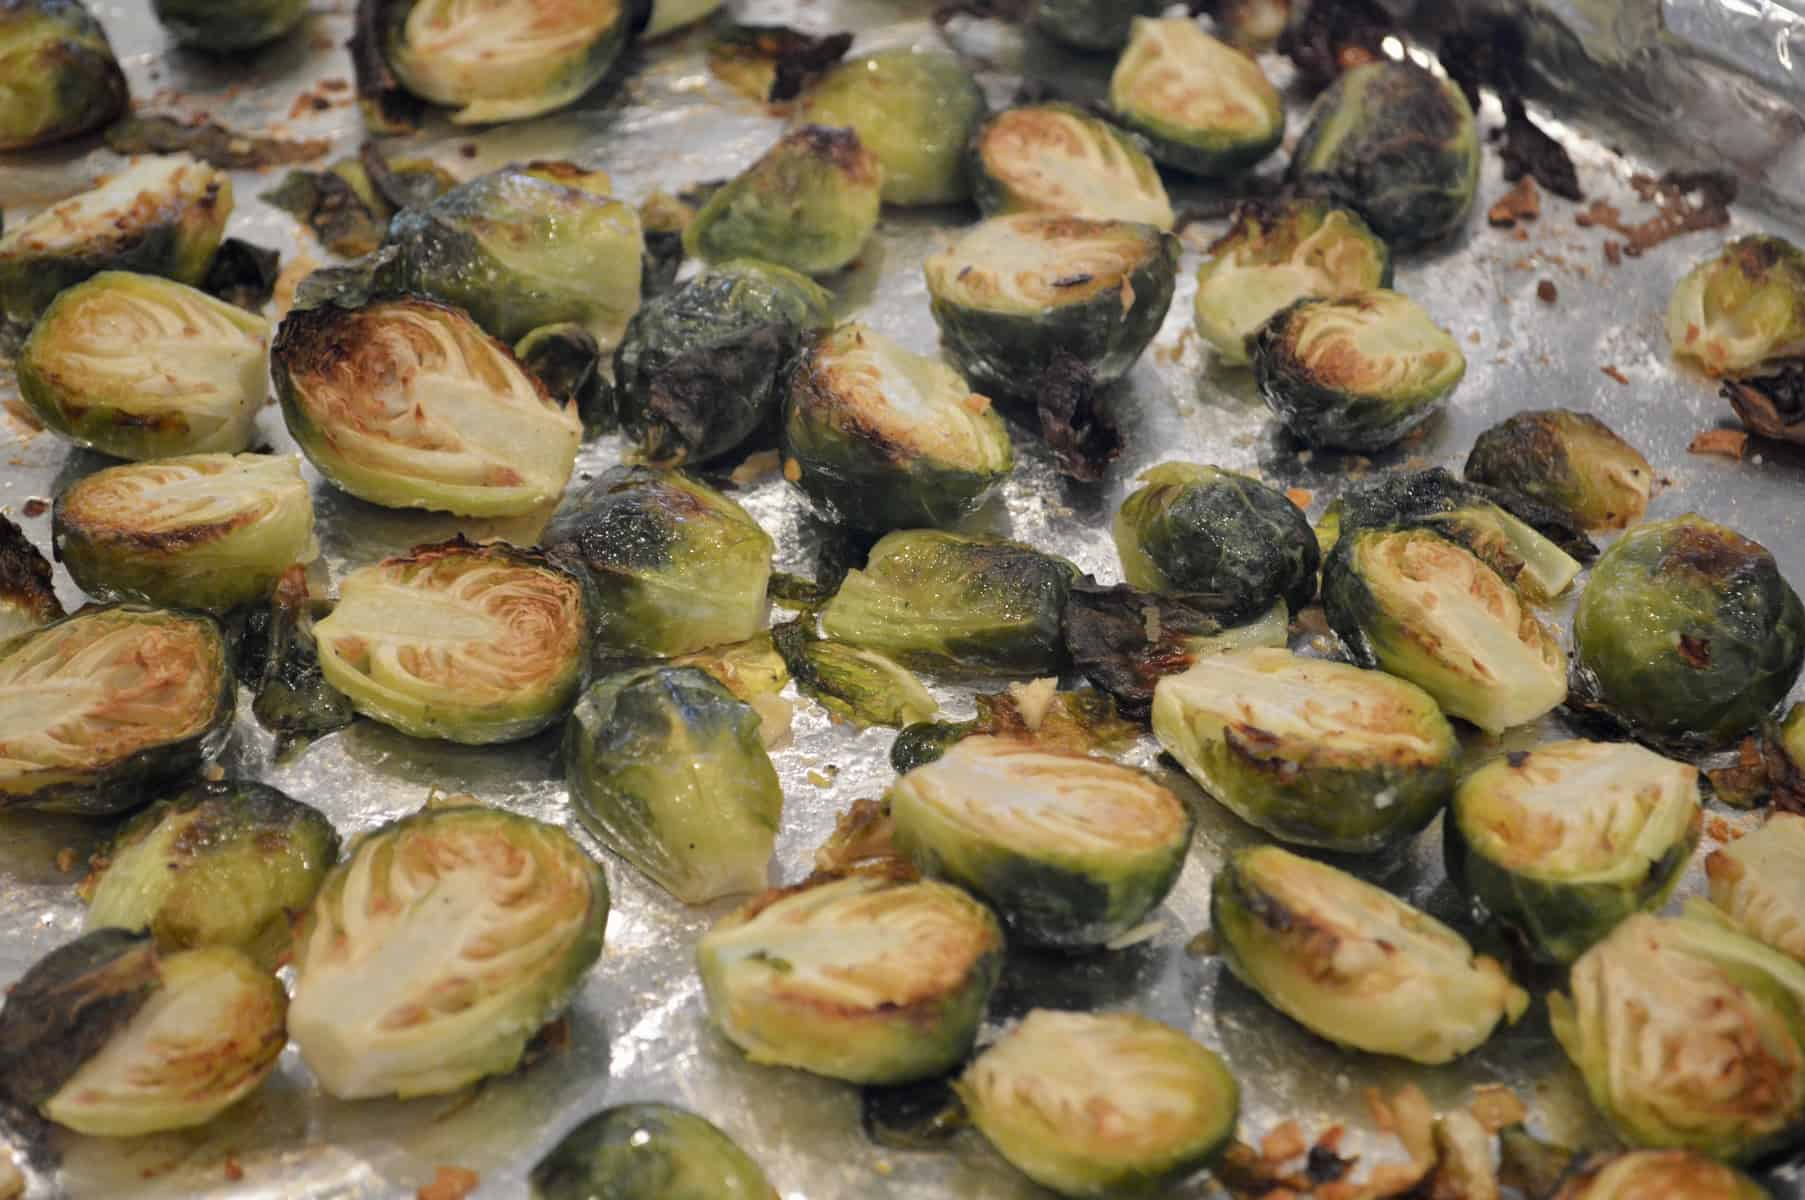 roasted Brussels sprouts with garlic out of the oven on a sheet pan